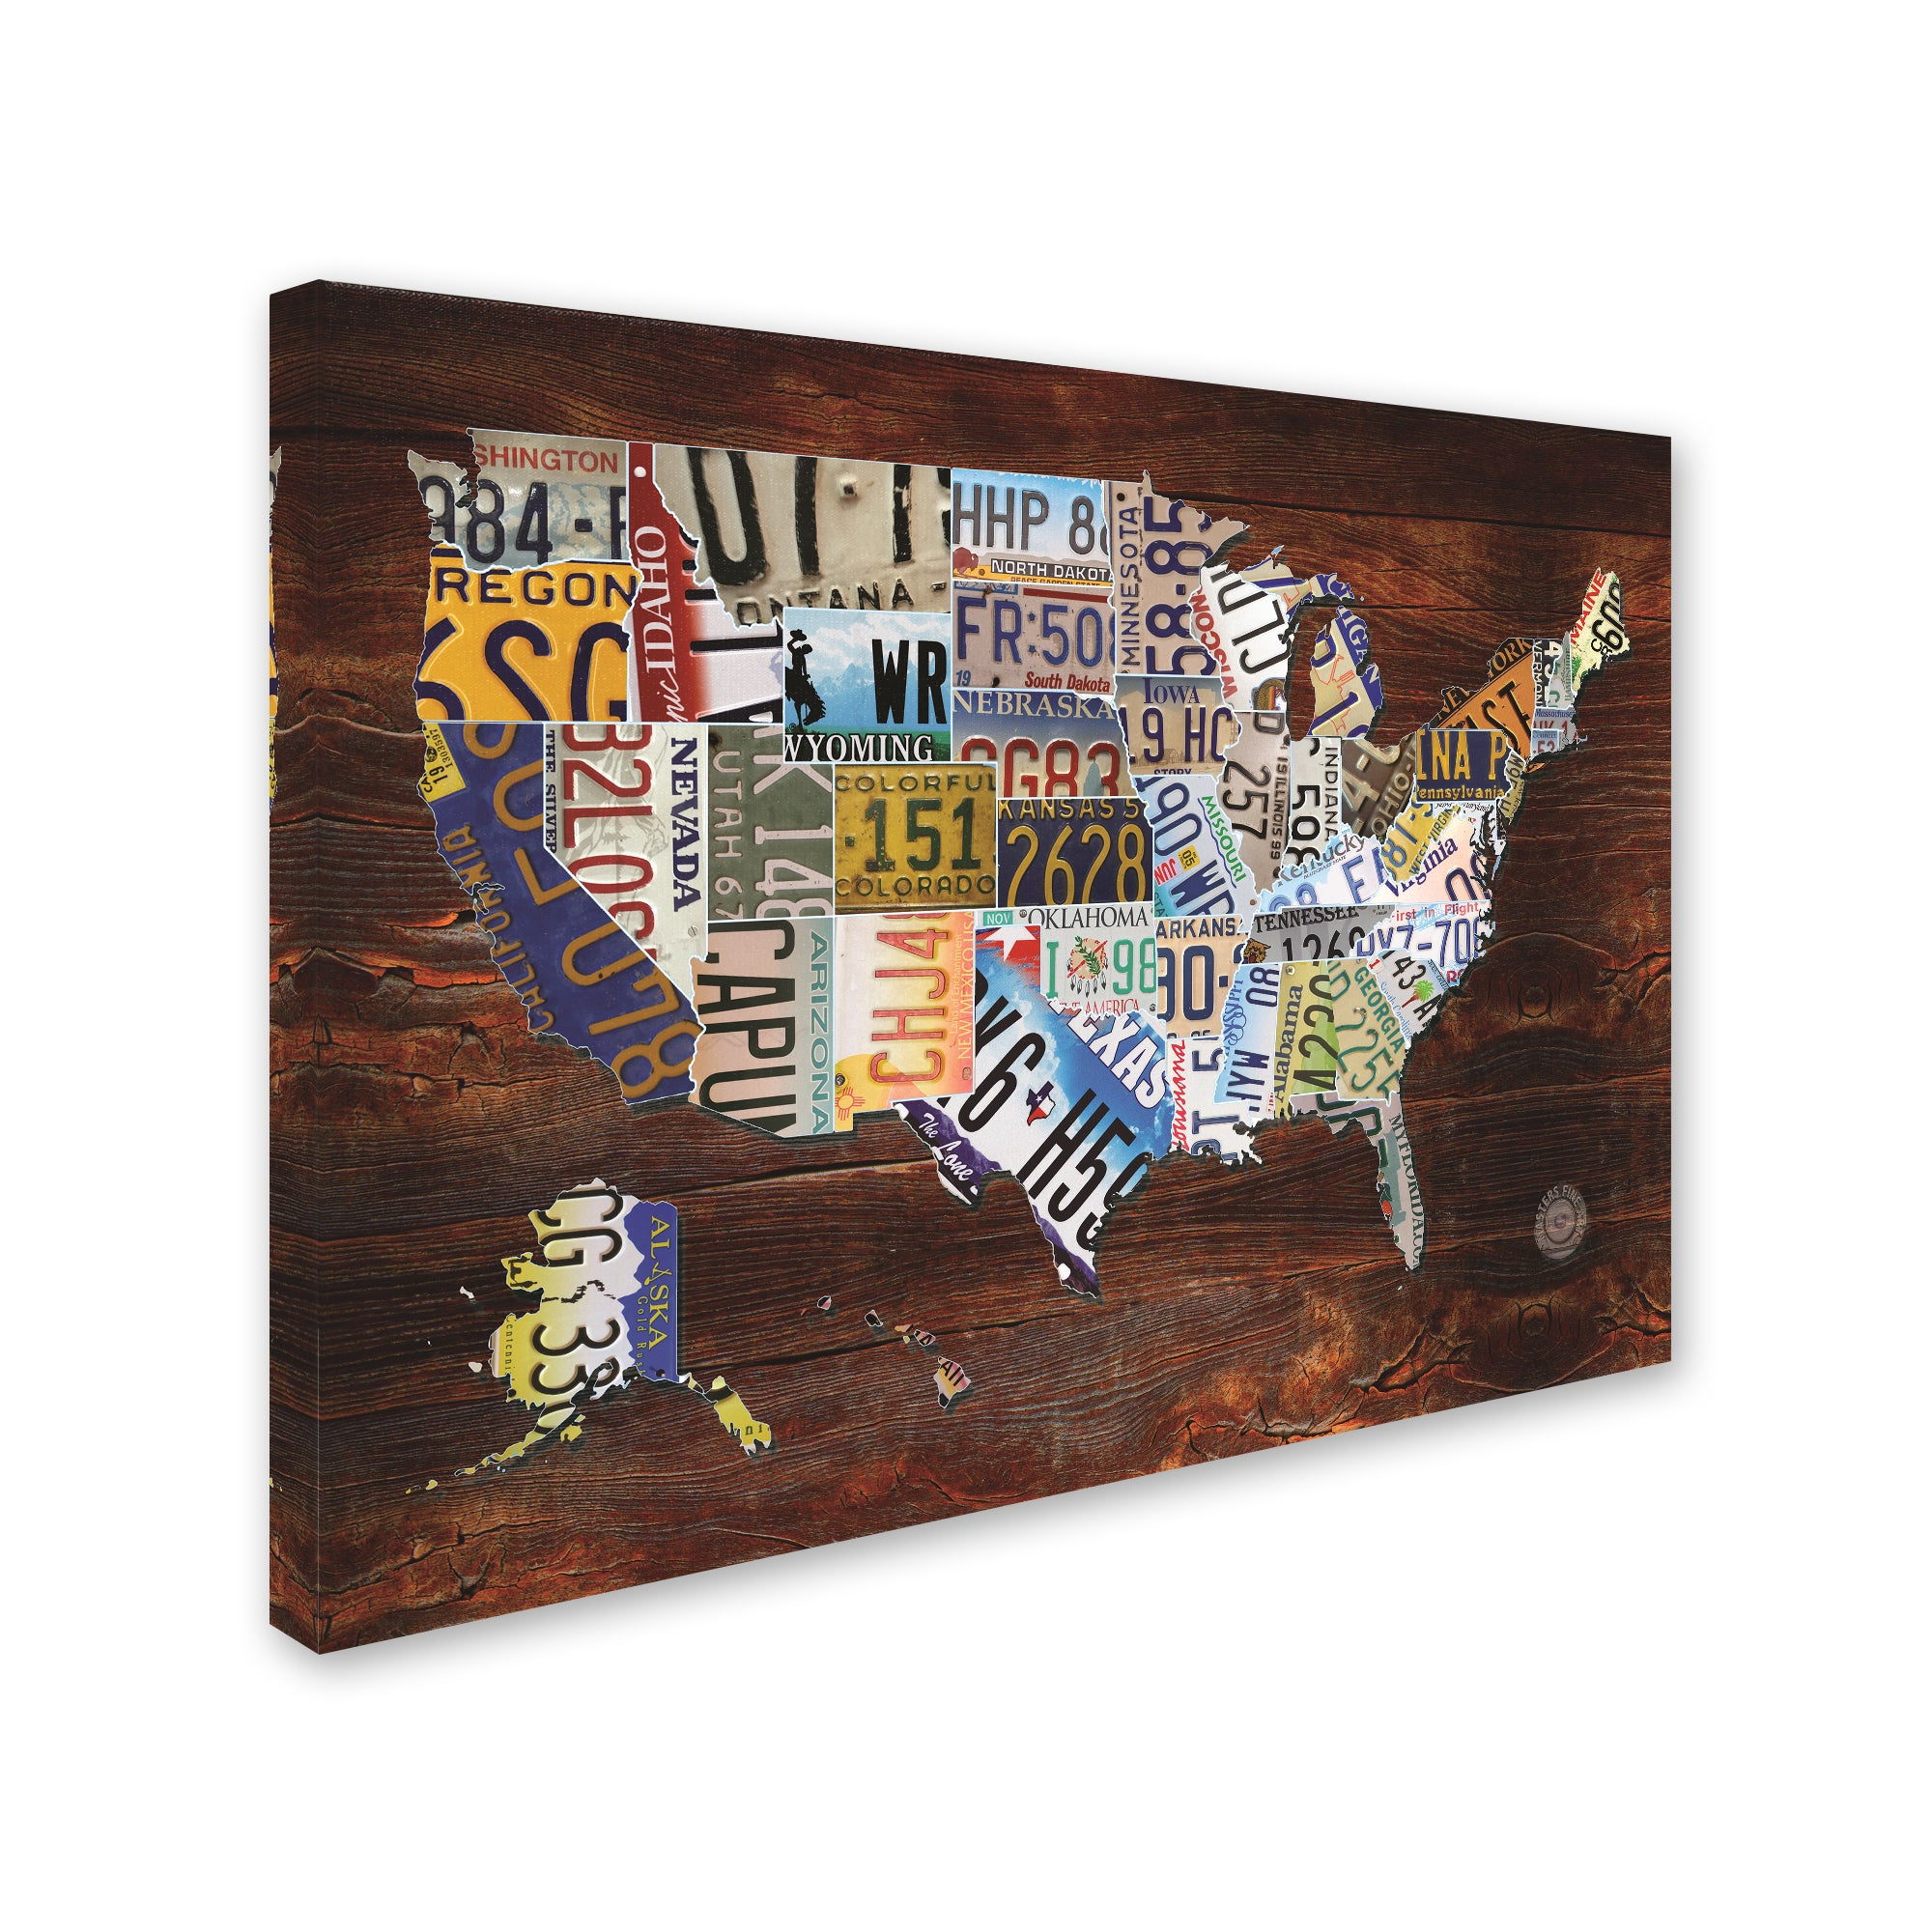 Masters Fine Art 'USA License Plate Map on Wood' Canvas Art on license plate world map, map usa map, color usa map, leapfrog interactive united states map, flag usa map, basketball usa map, baseball usa map, paint usa map, golf usa map, motorcycle usa map, driving usa map, decals usa map, watercolor usa map, art usa map, reverse usa map, list 50 states and capitals map, state usa map, time usa map, license plate map art, license plates for each state,